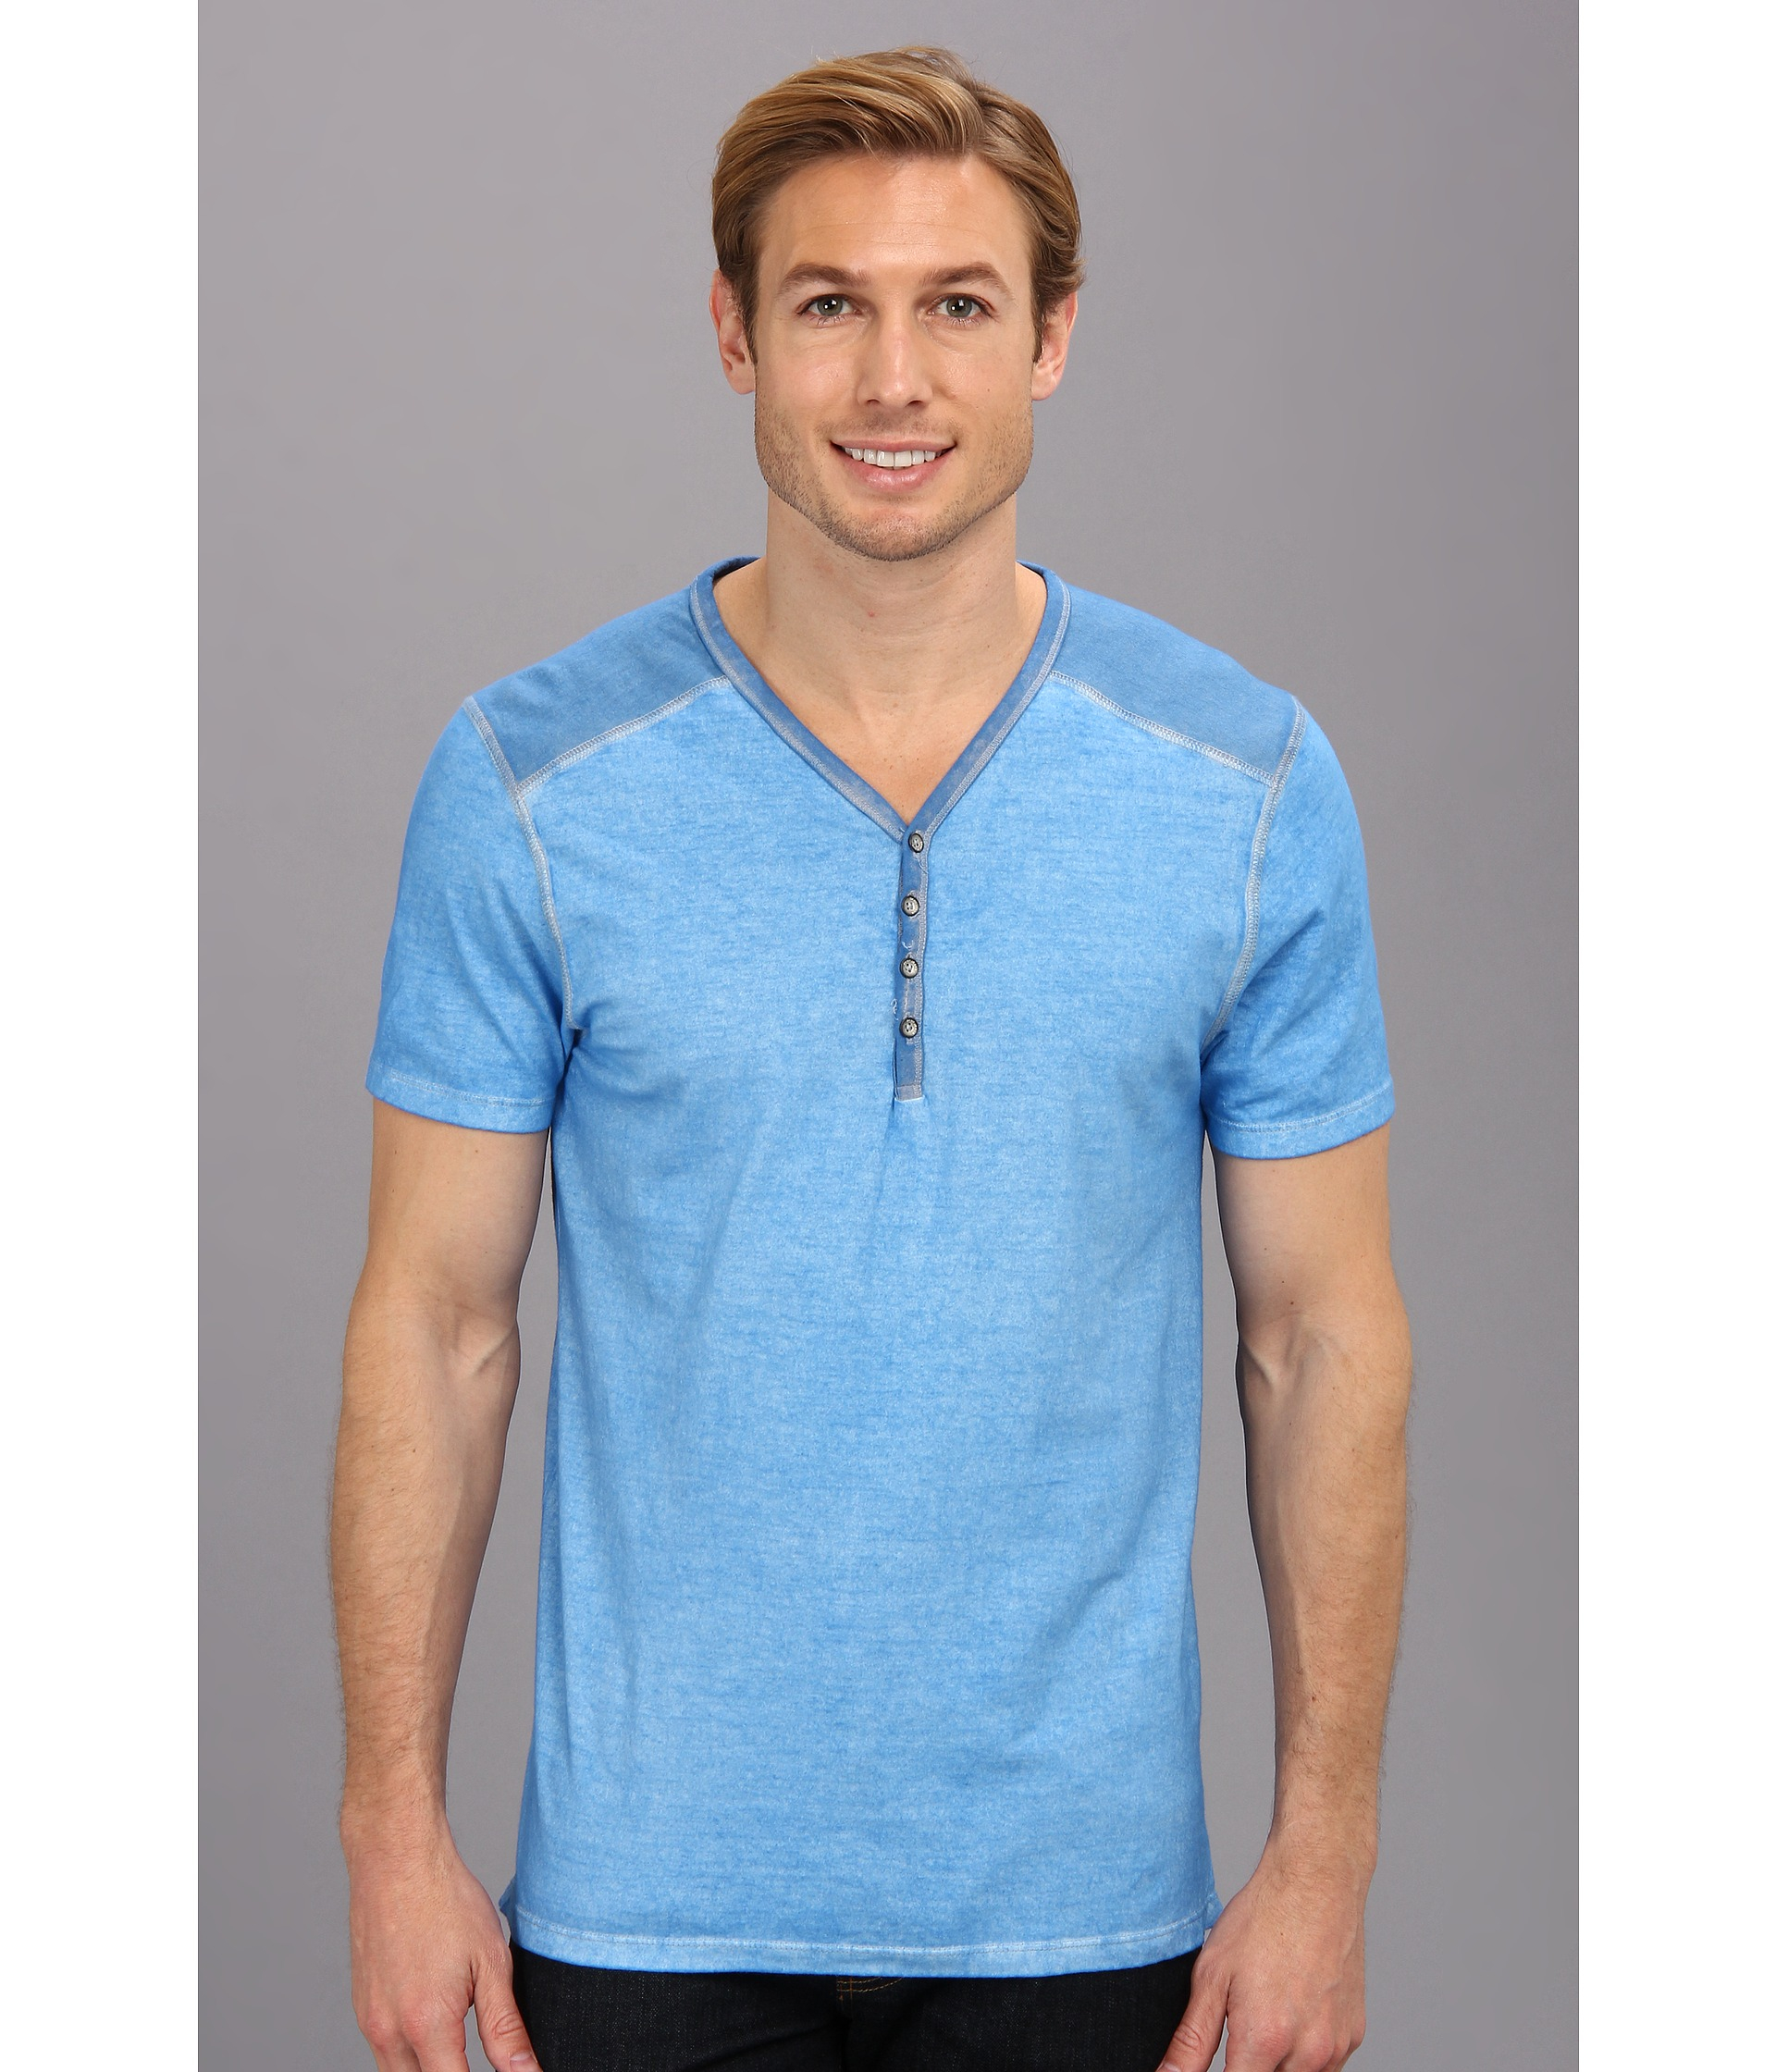 Dkny Ss 5050 Solid Mix Beaten Pigment Wash Yhenley In Blue